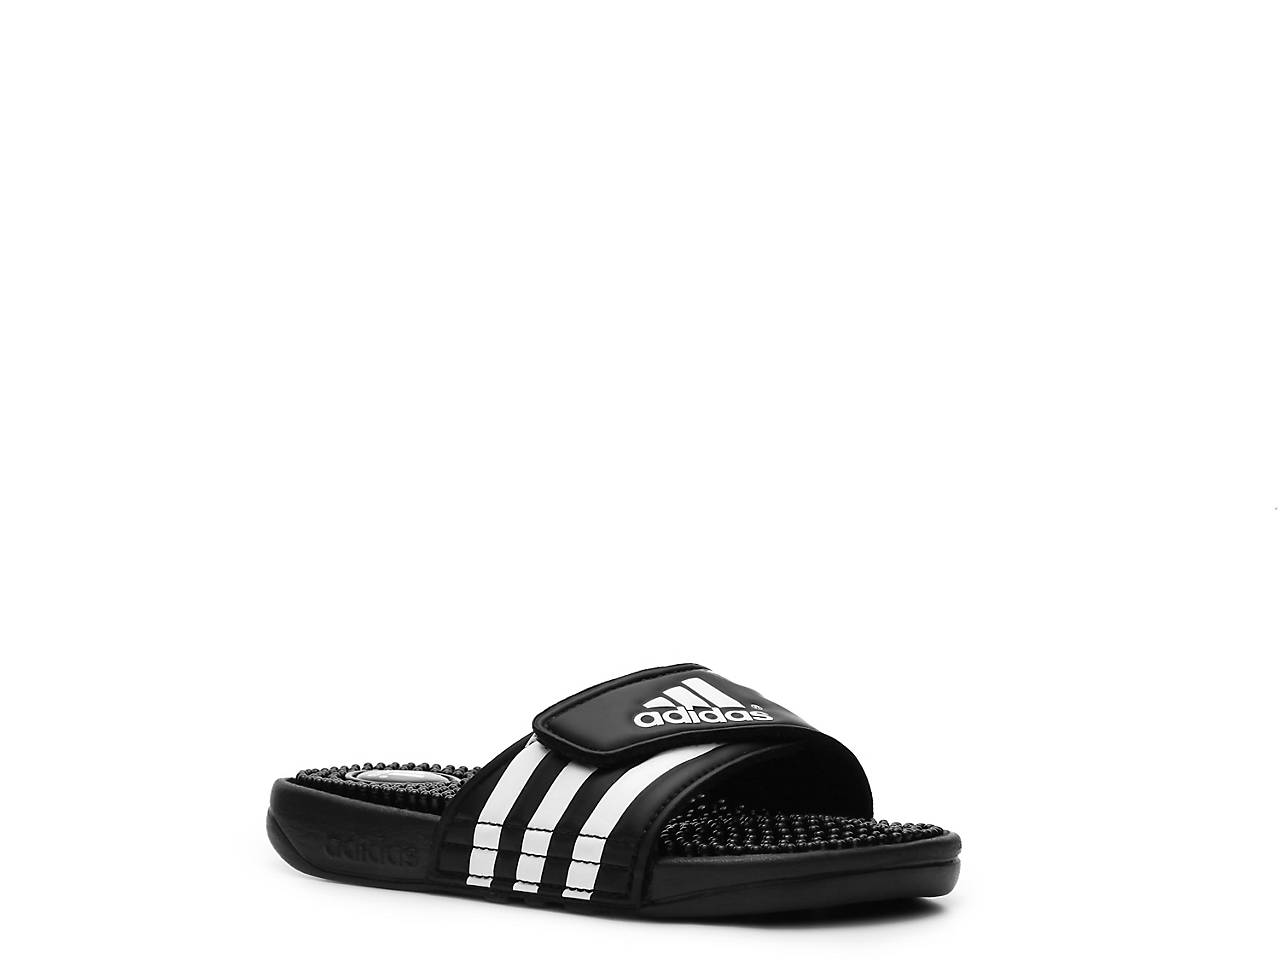 415b57ba3afb adidas Adissage Toddler   Youth Slide Sandal Kids Shoes